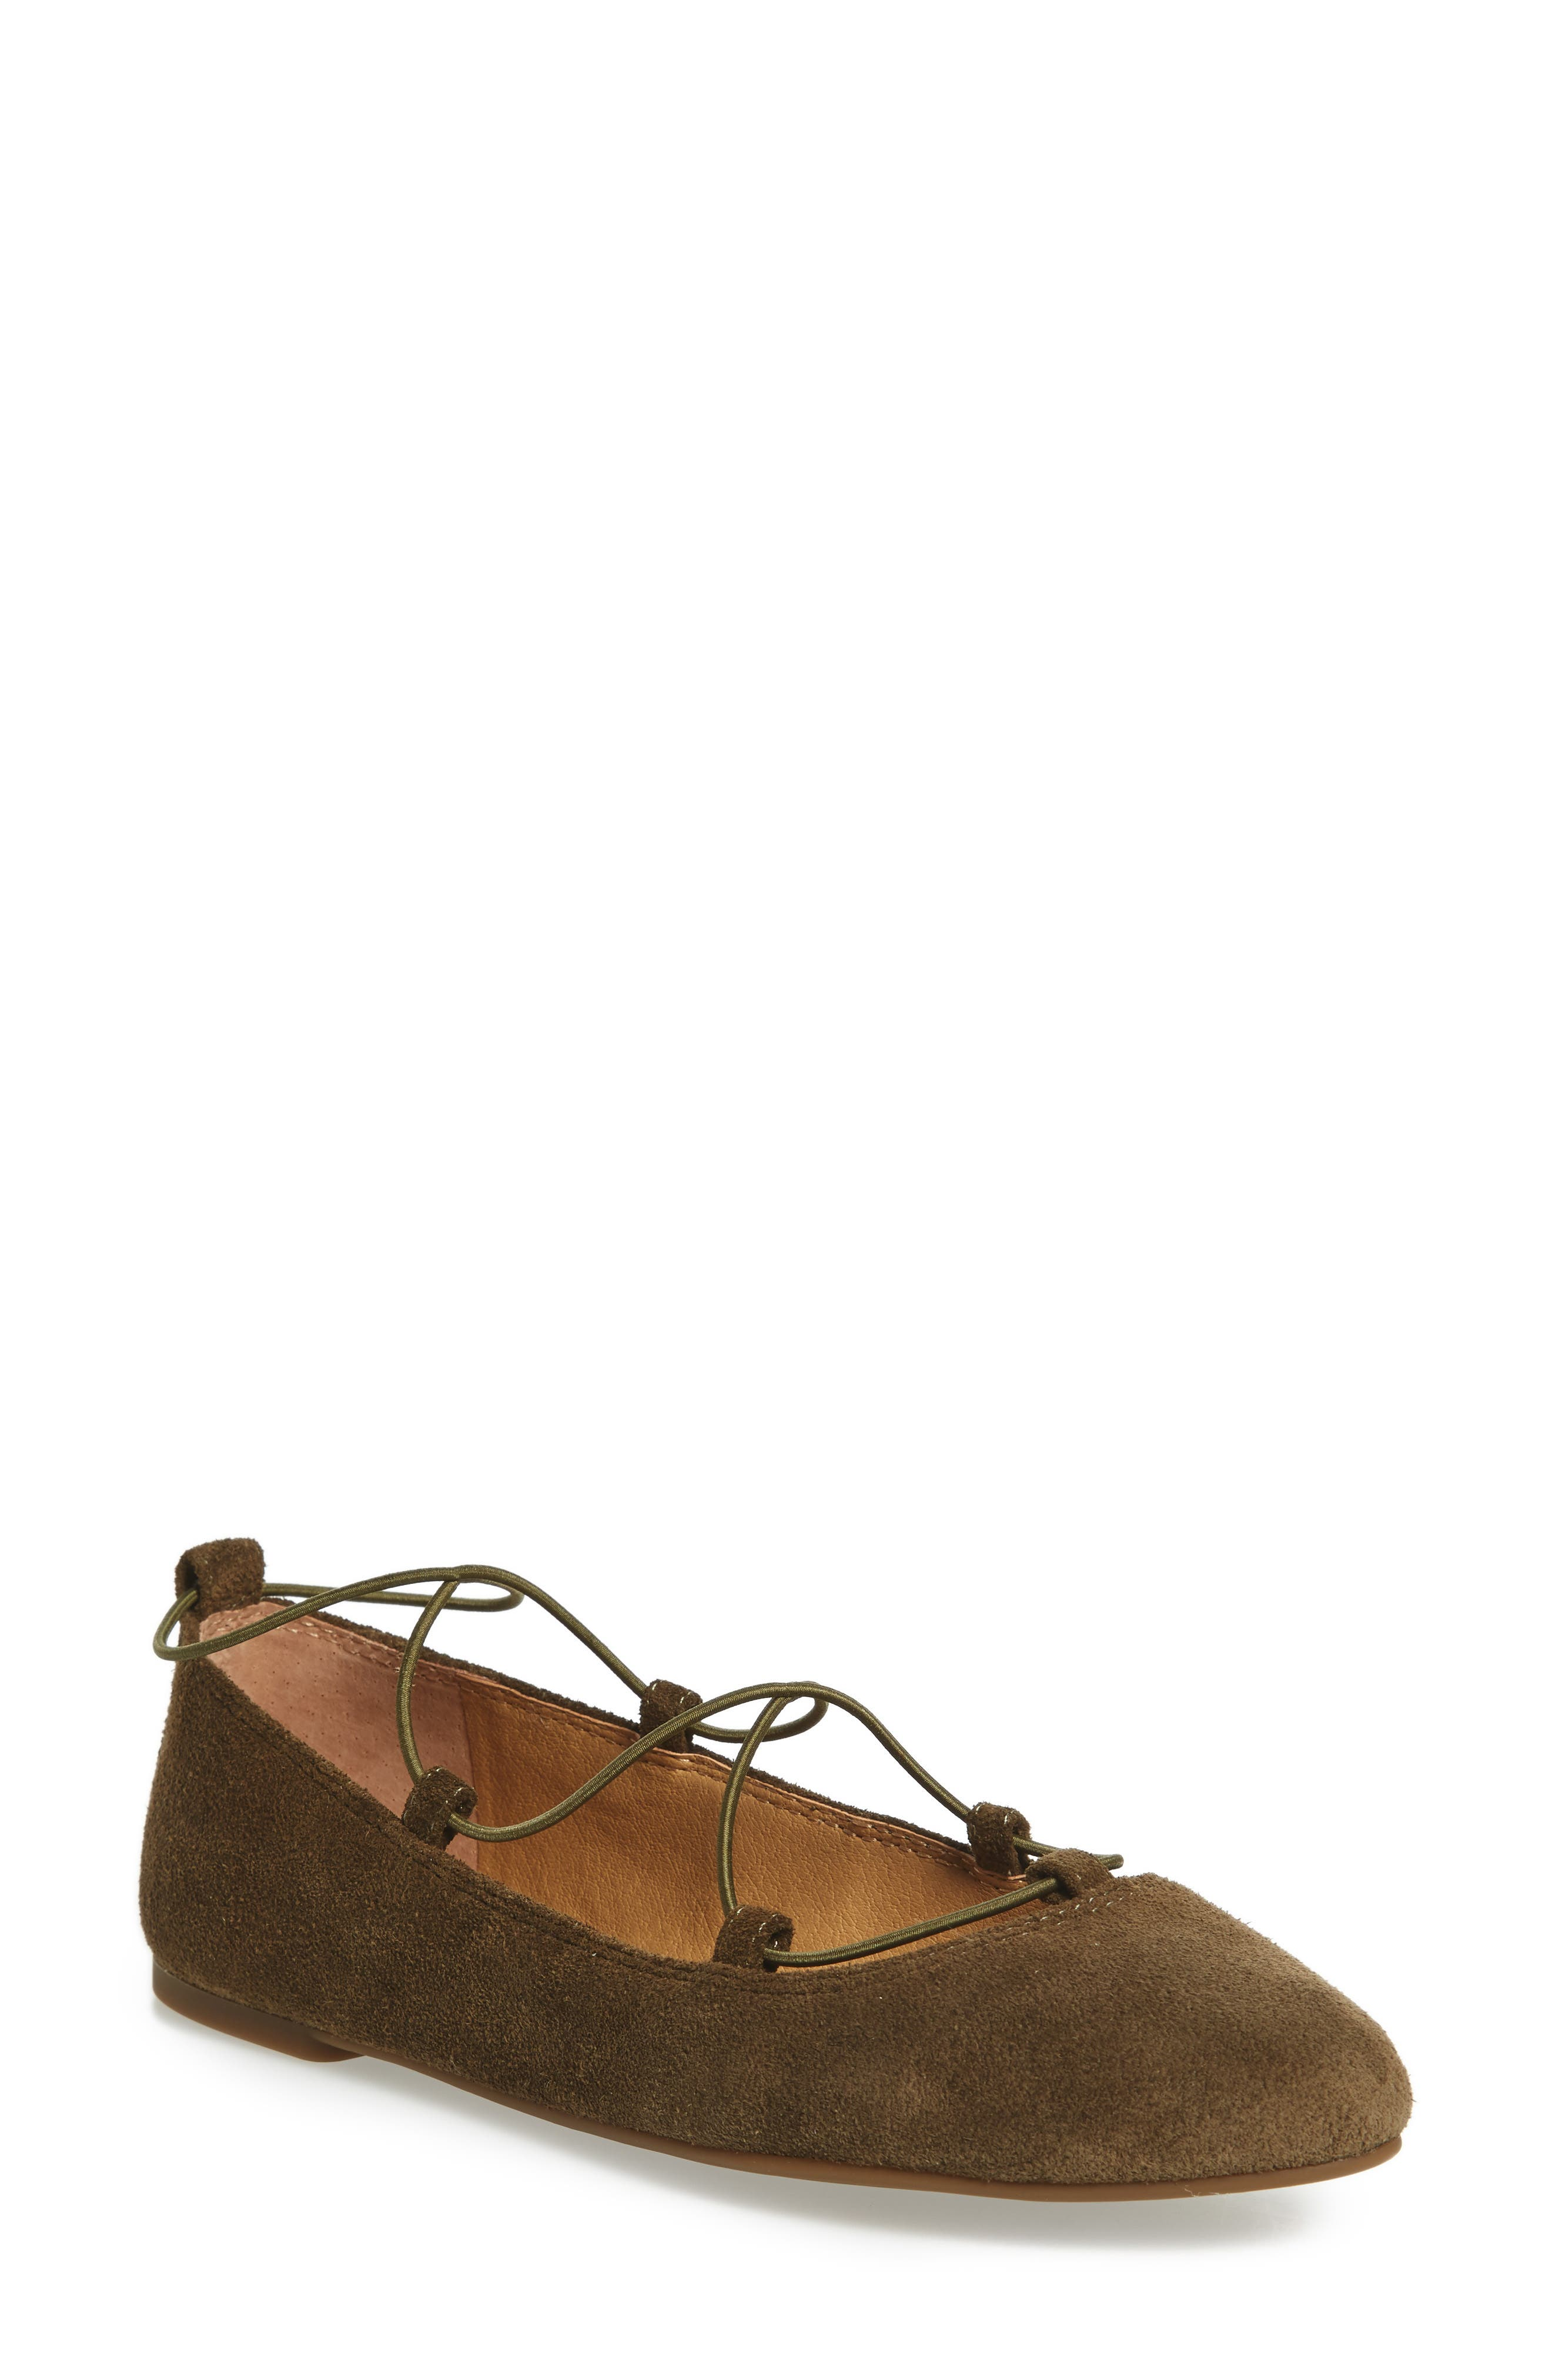 'Aviee' Lace-Up Flat,                         Main,                         color, Ivy Green Suede